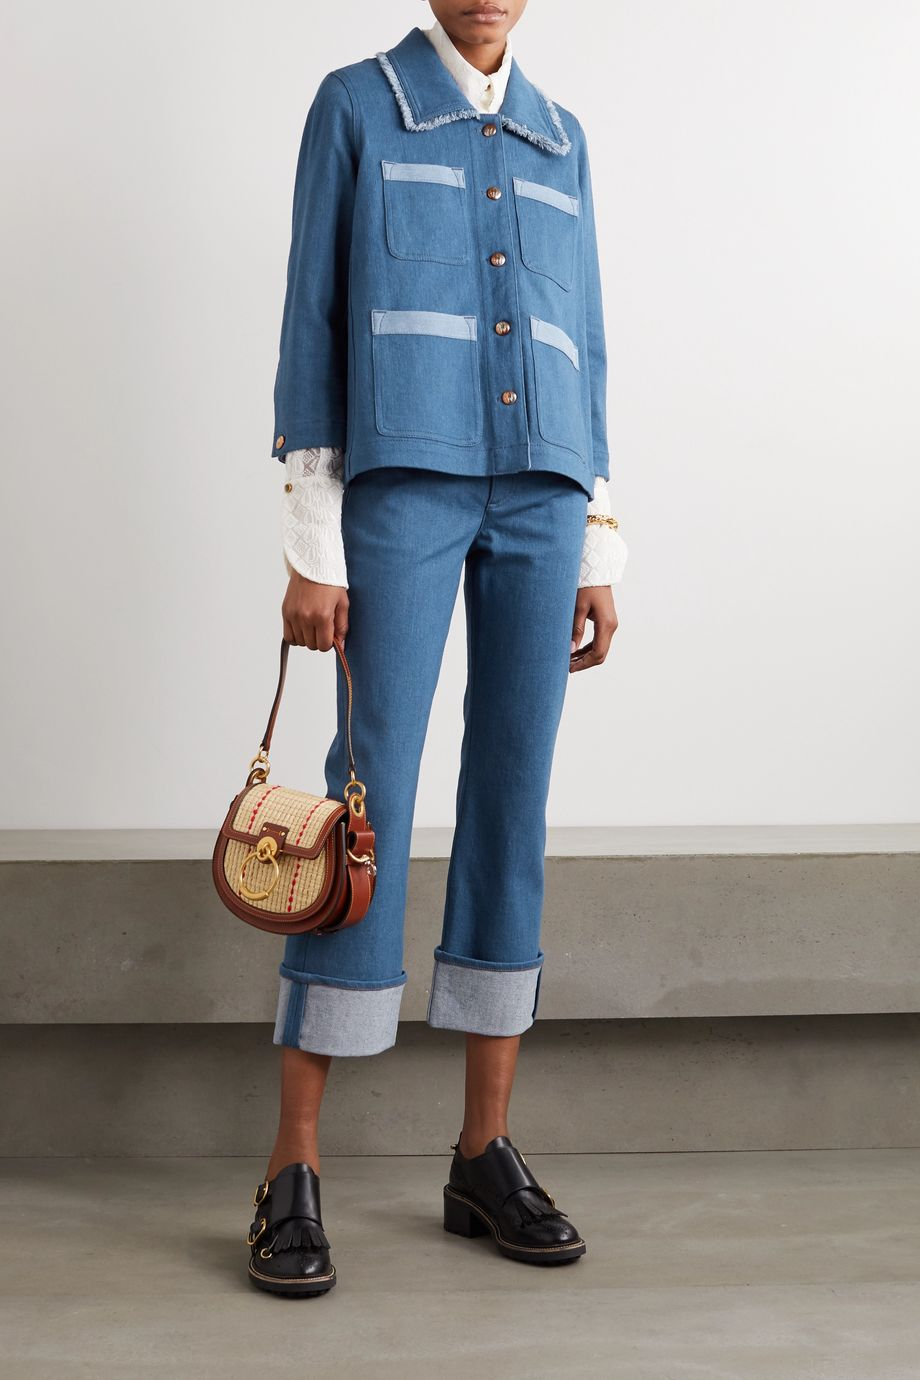 Chloé Frayed two-tone denim jacket